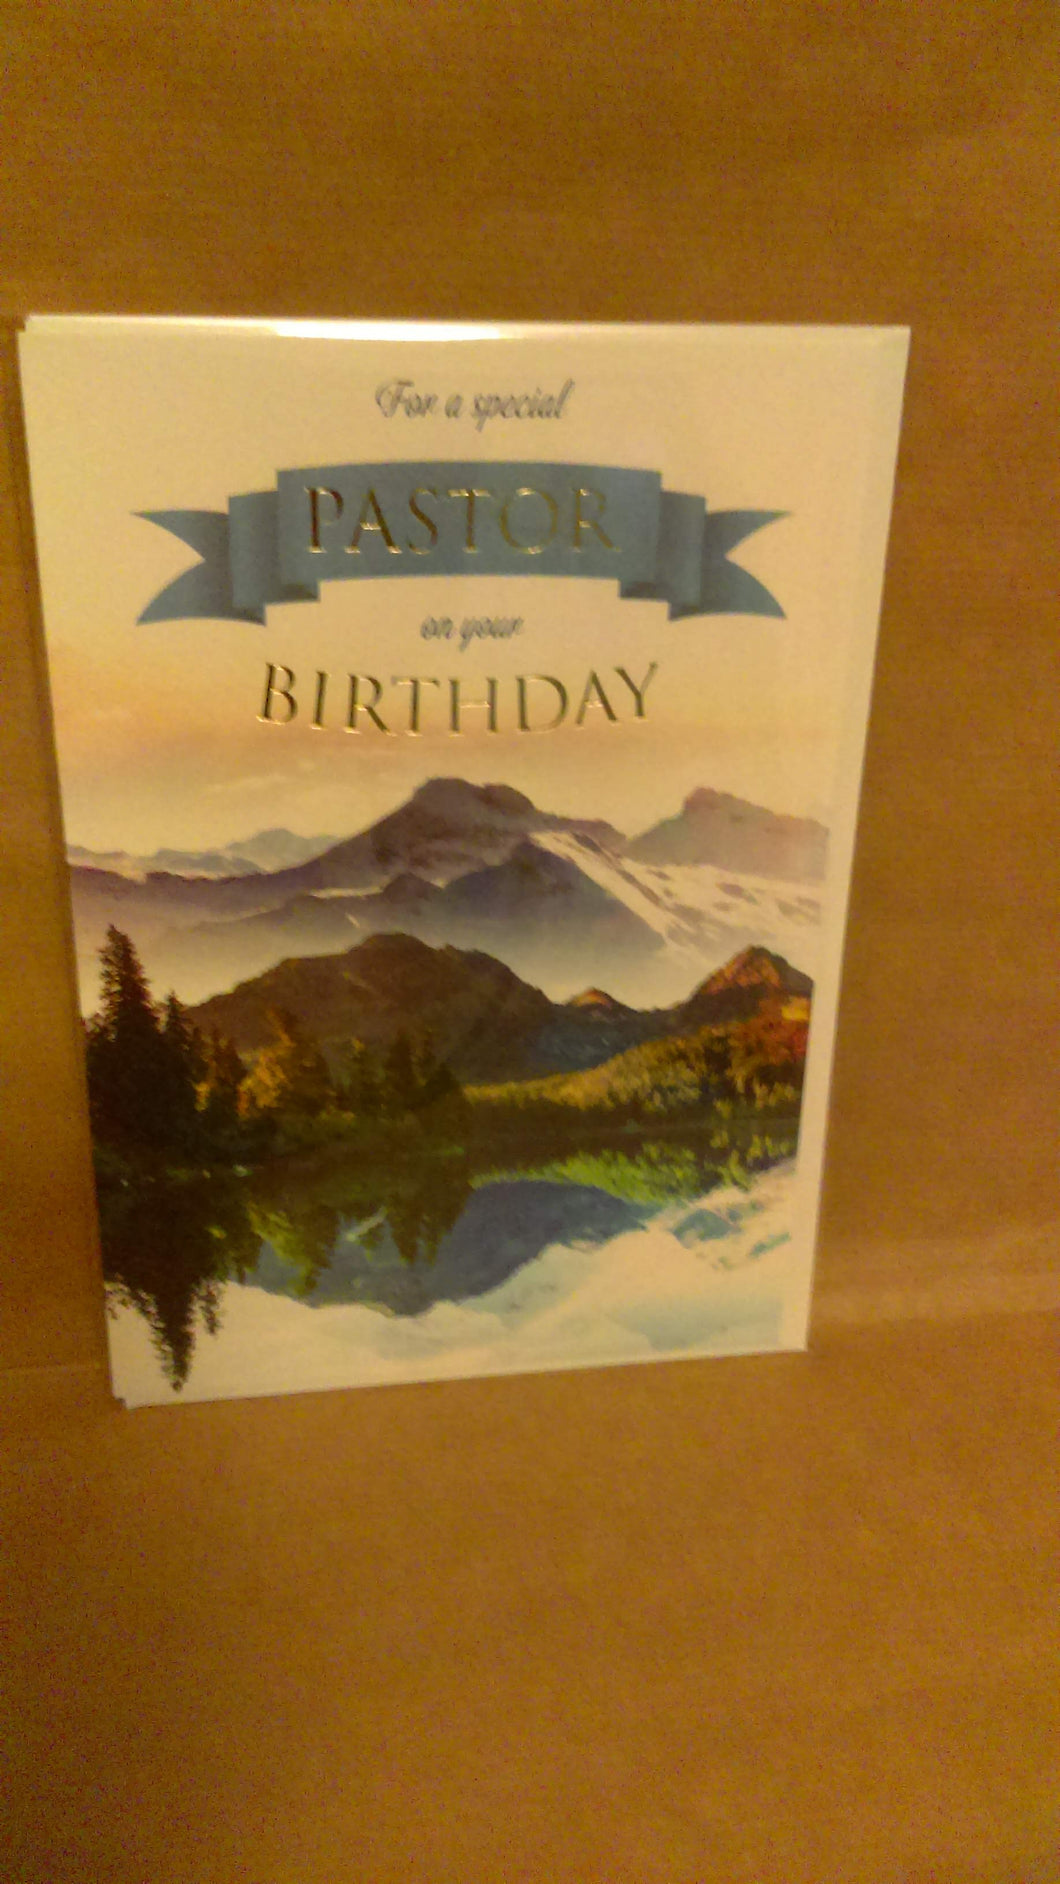 General Birthday: For a special Pastor on your Birthday